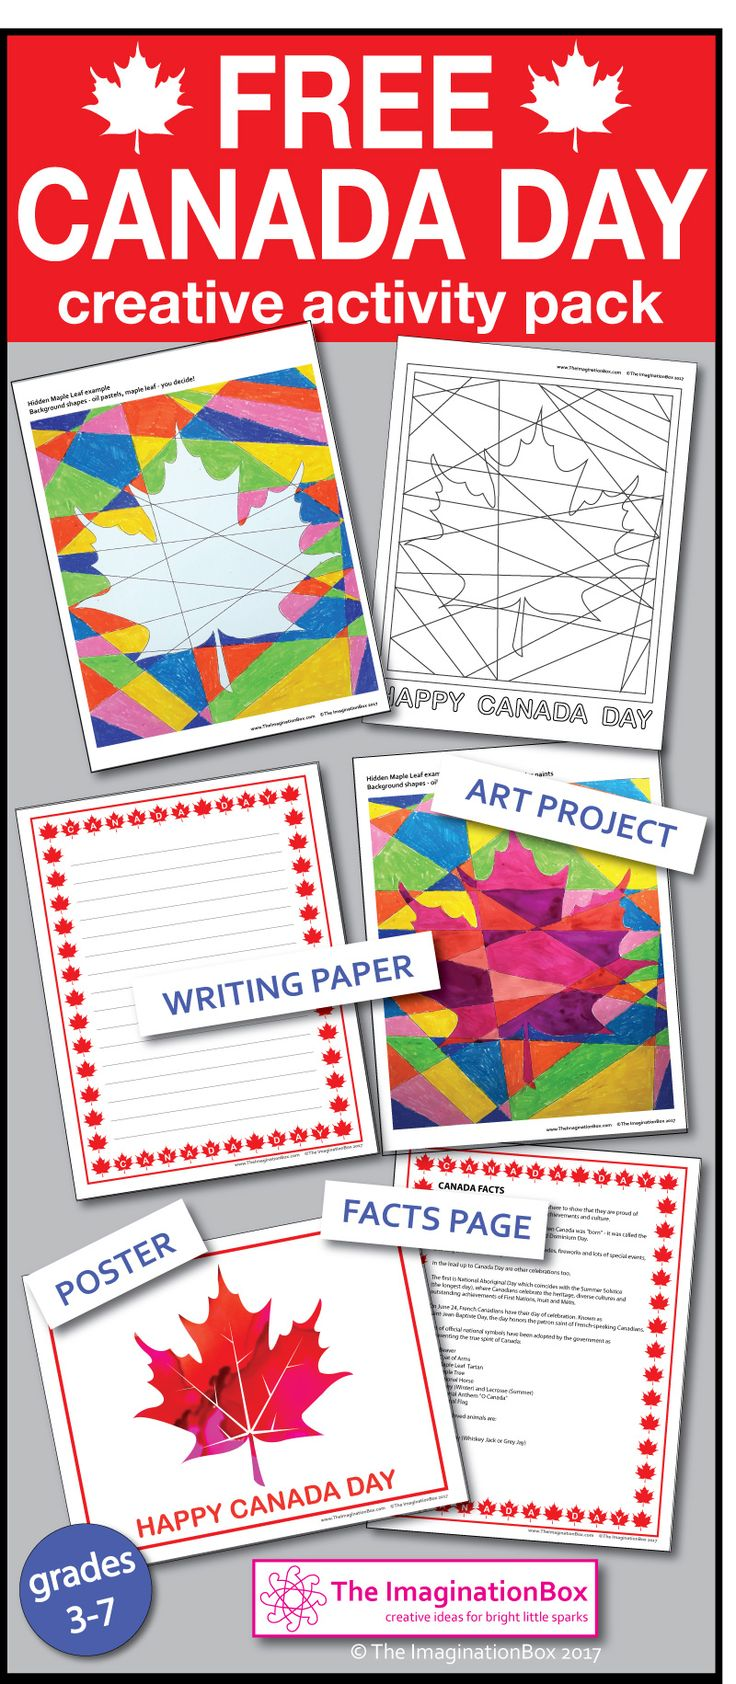 This FREE 8 page pdf download fun, imaginative Canada Day 150 maple leaf themed art and creative resource pack has been designed as a way of introducing my art projects and classroom decorations to your students. In this pack you'll find an abstract art project with photographed examples and ideas, a poster, a facts page and maple leaf bordered lined page for creative writing - click on the link to download - Happy Canada Day 150 July 1st!